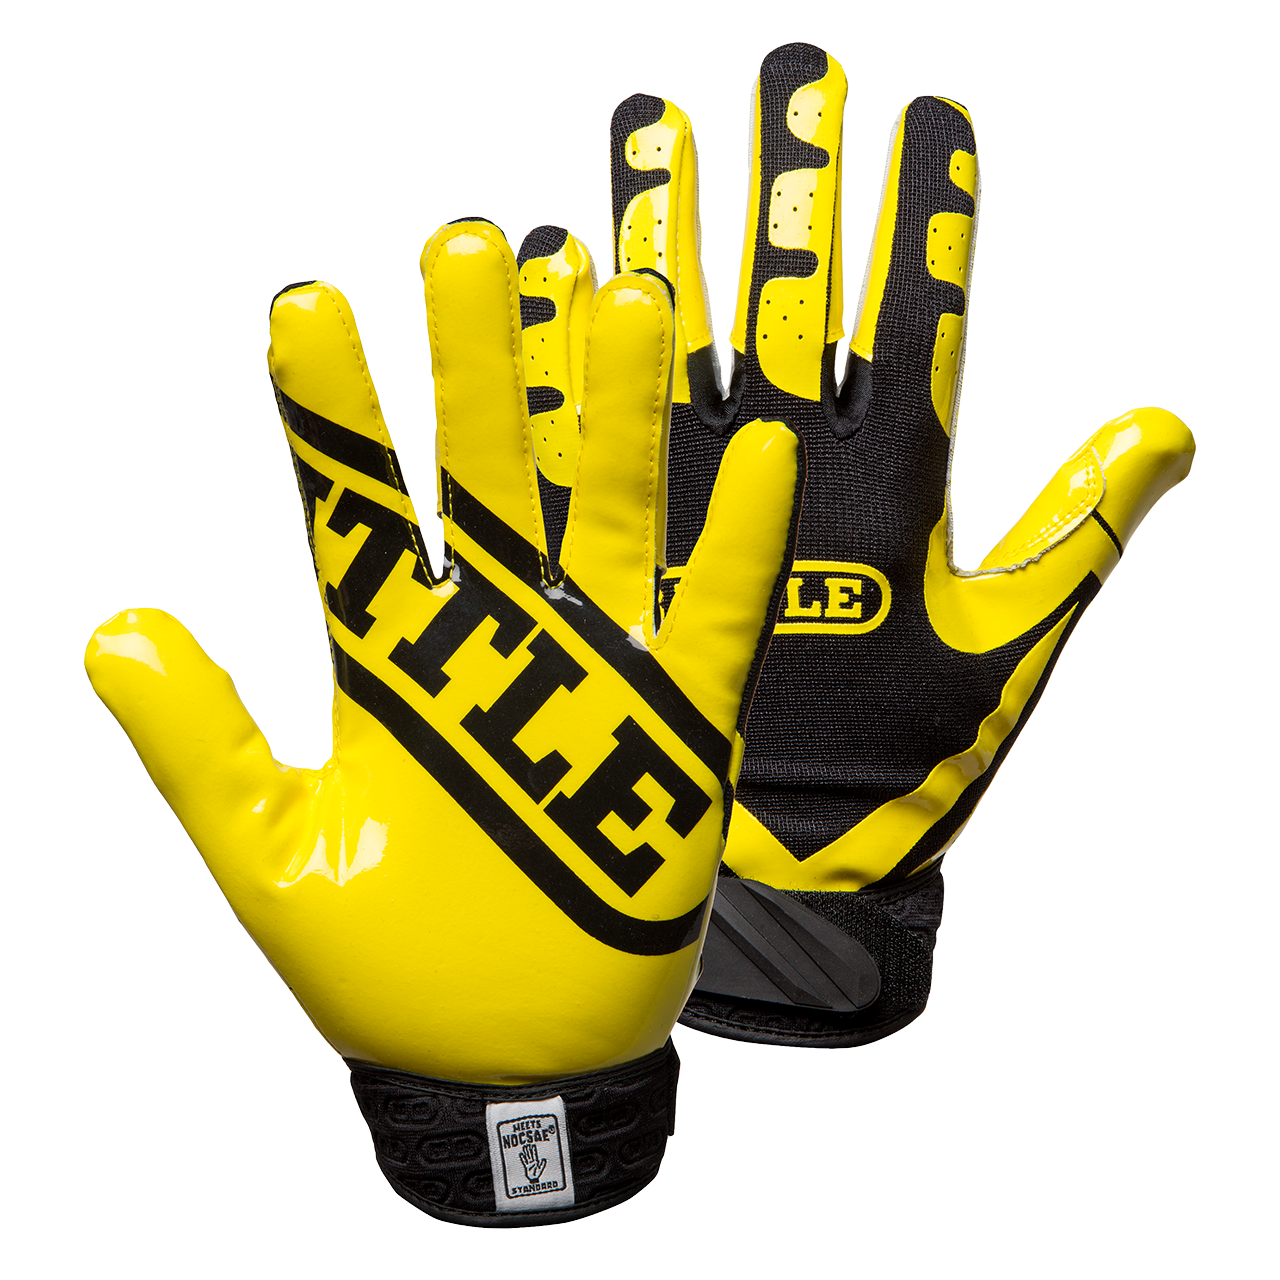 Football glove clipart picture download Hermes™Presented by on emaze picture download